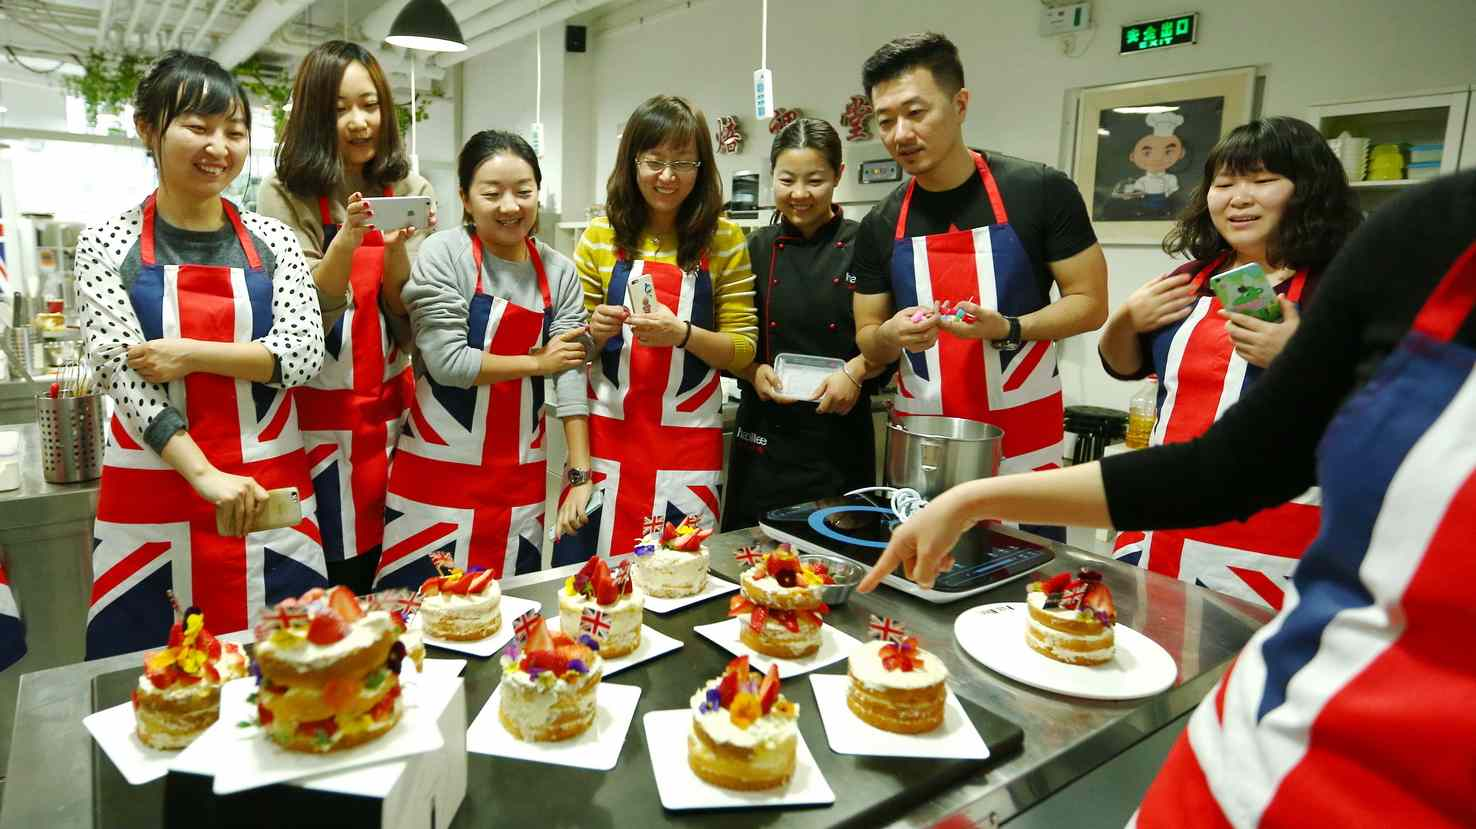 Leeds City Region holds Bake-Off in Beijing